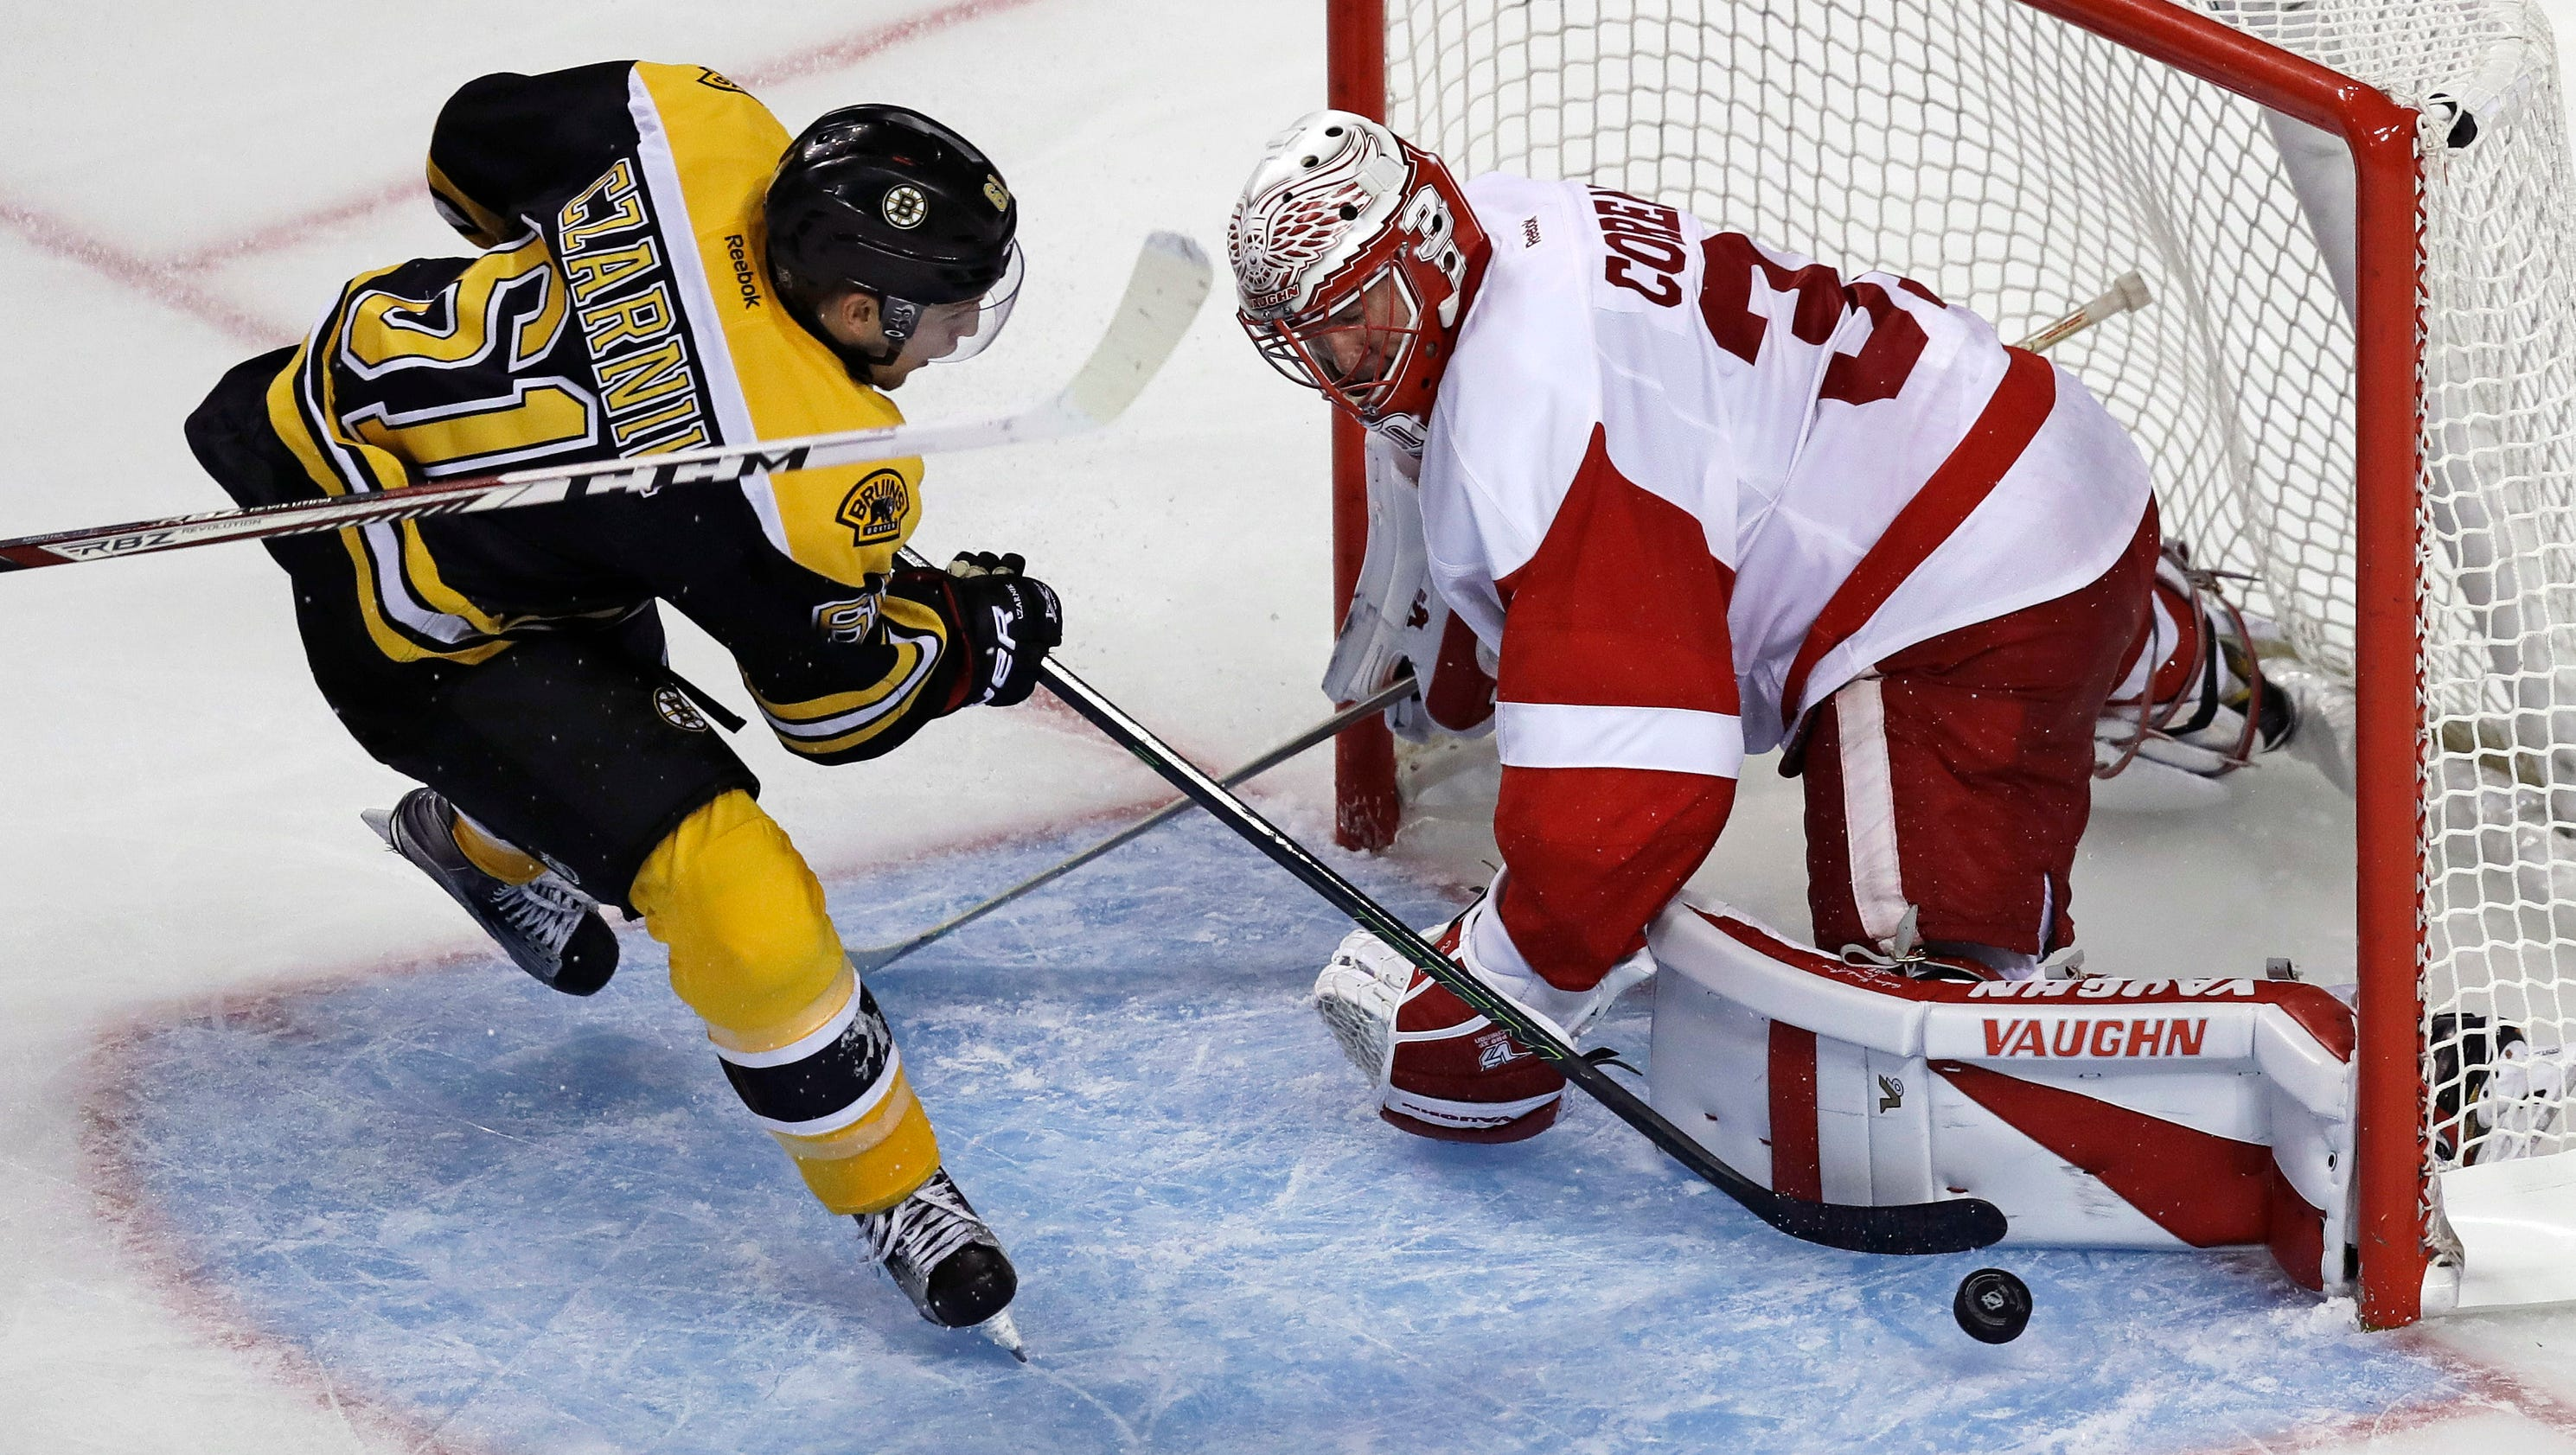 c79ee5cfe25 Detroit Red Wings  Jared Coreau feeds NHL hunger with first win Friday  (1.13 6)